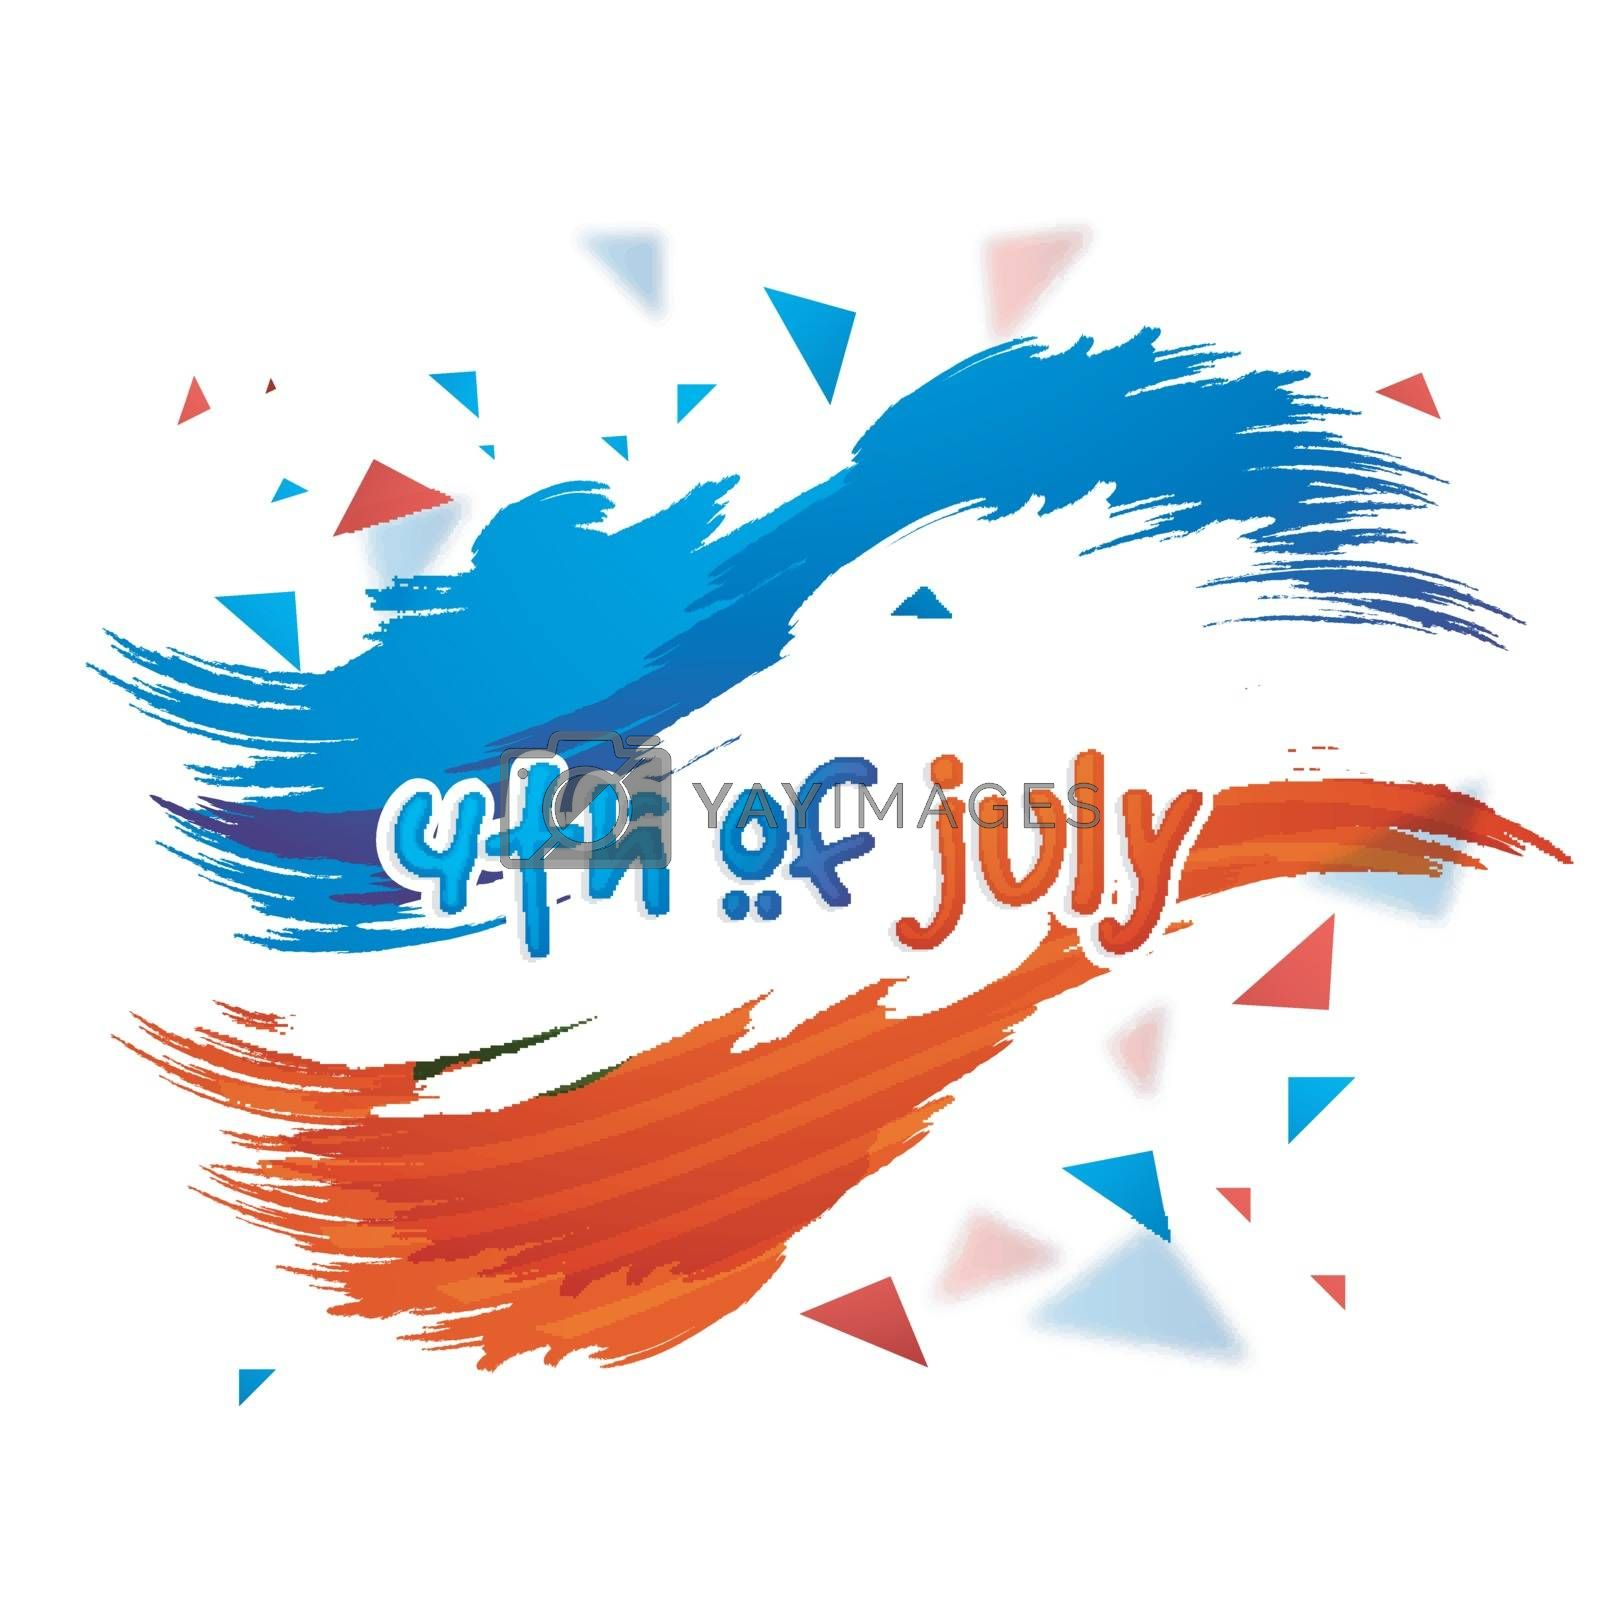 4th of July, American Independence Day celebration background with abstract watercolor brush strokes.